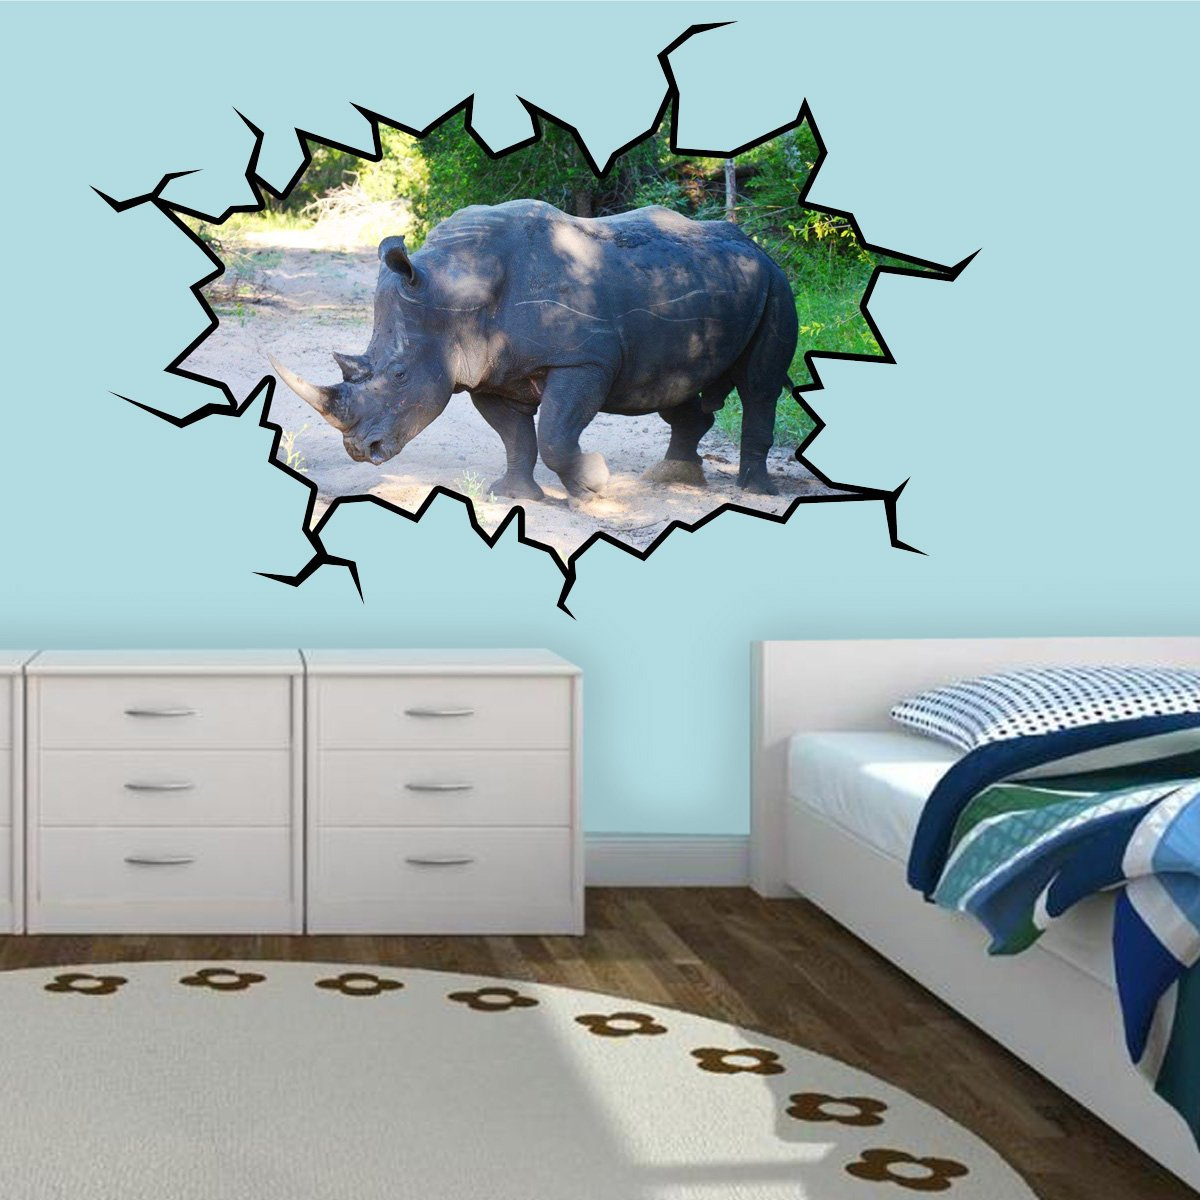 VWAQ Rhino Wall Decal Rhino Wall Art Hole In The Wall Safari Animal Decor